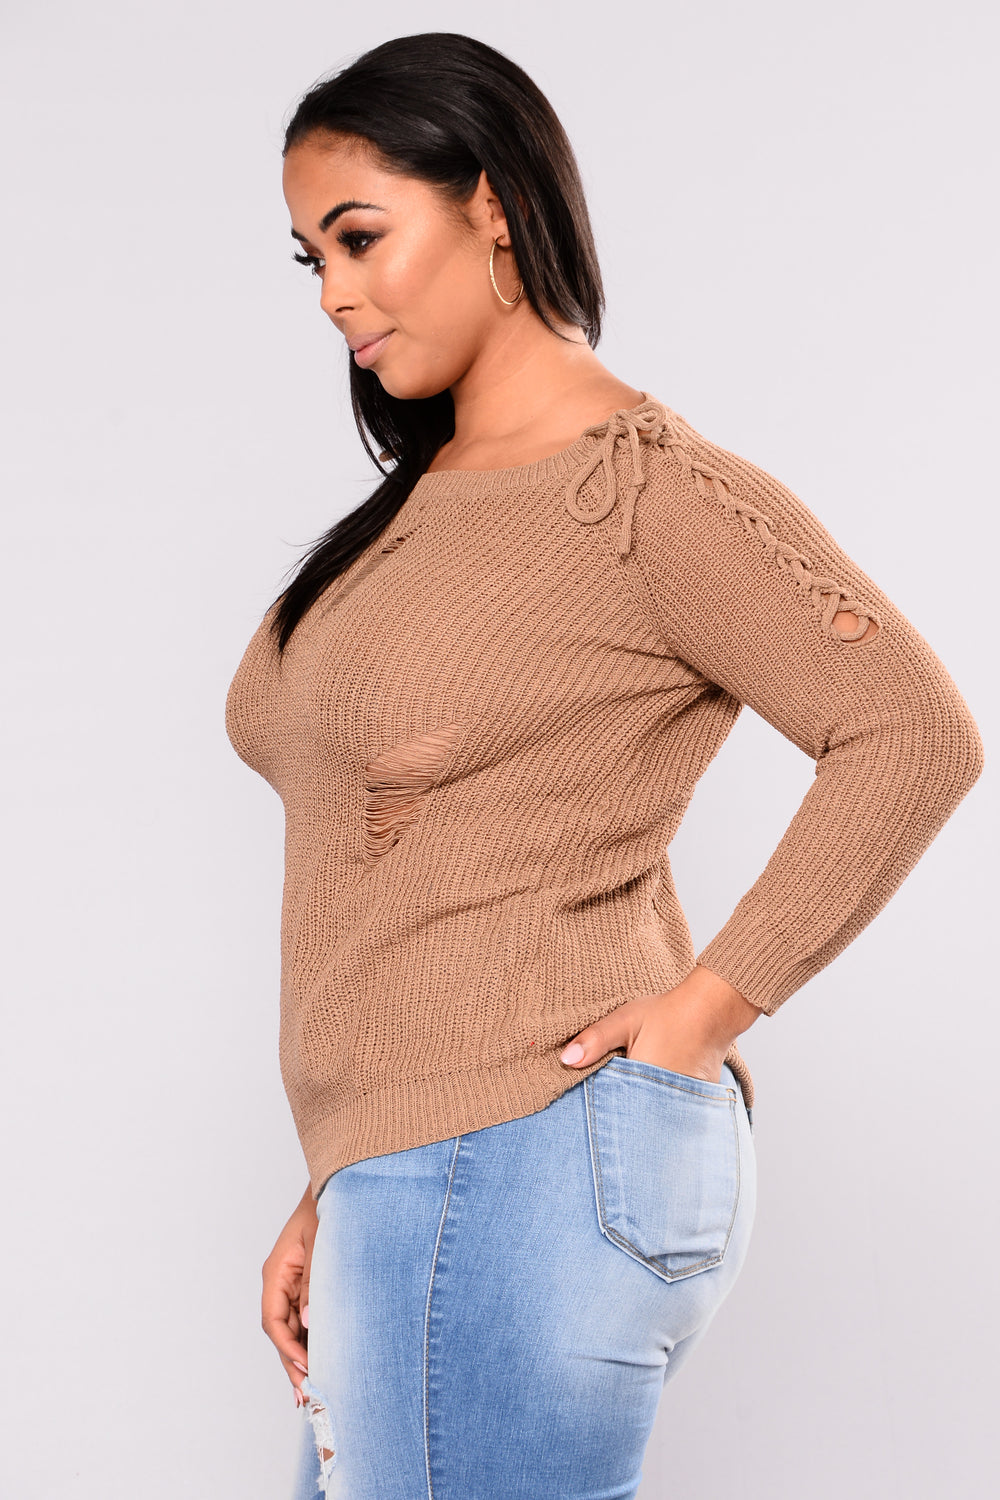 Keys To The Streets Sweater - Mocha